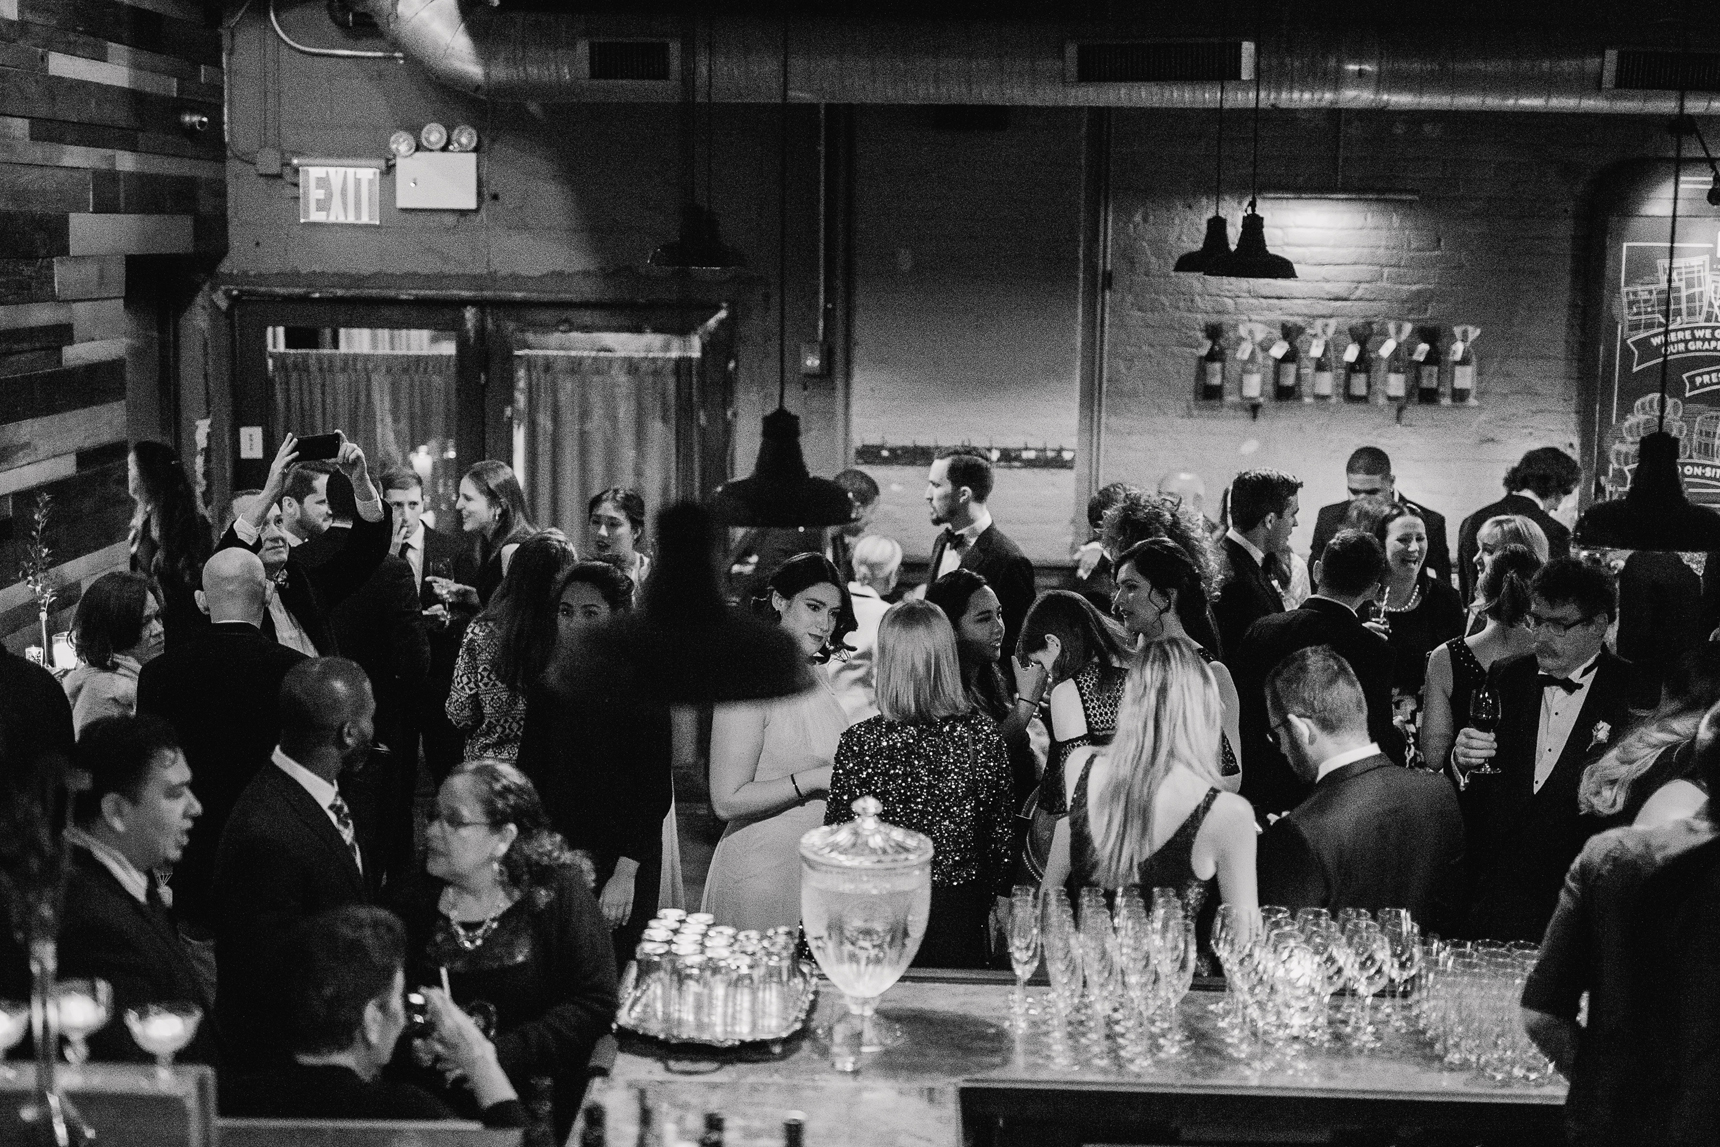 KP_BrooklynWinery_Wedding_NewYork_Photographer098.jpg